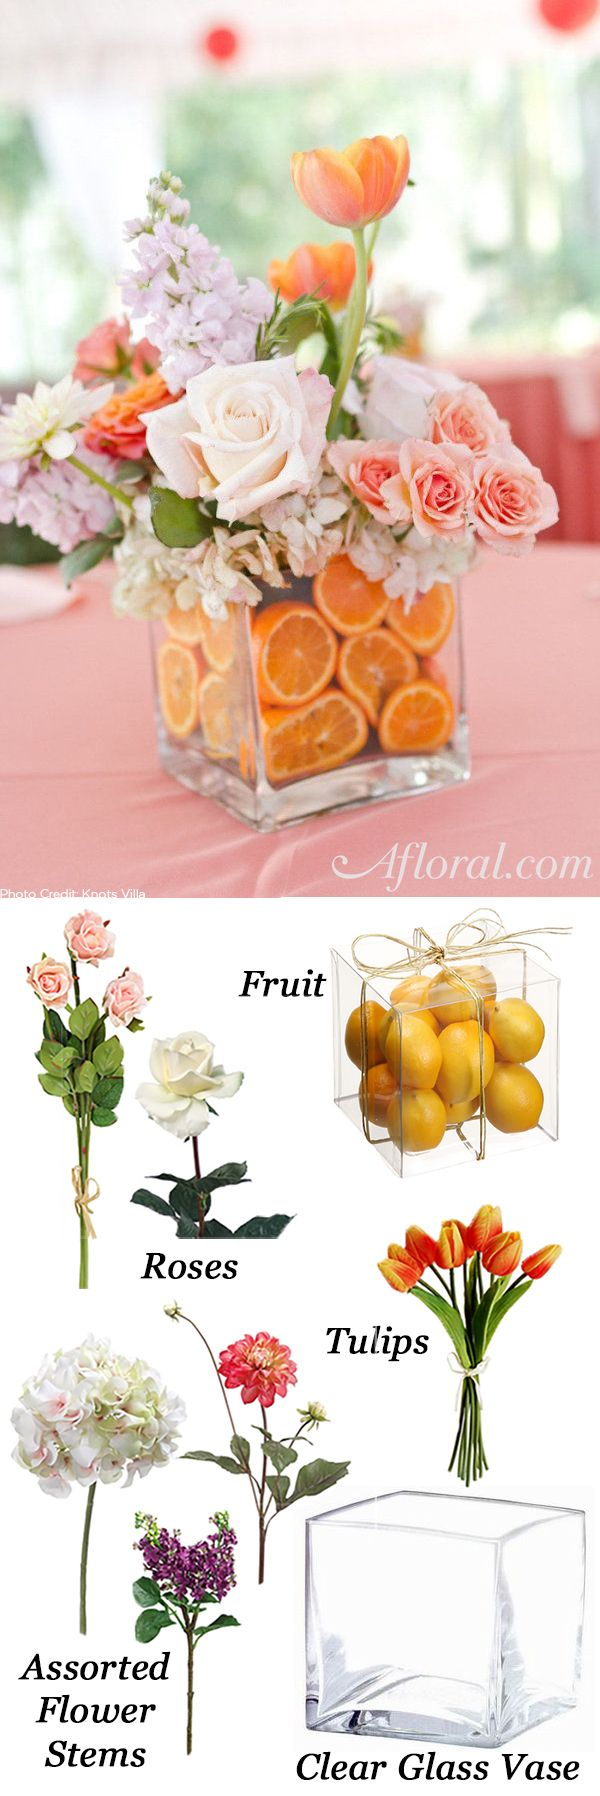 "Create a colorful and ""fresh"" look with our silk flowers and faux fruit.  Find inspiration from the Knots Villa fruit infused centerpiece and recreate this look for less with products from Afloral.com."